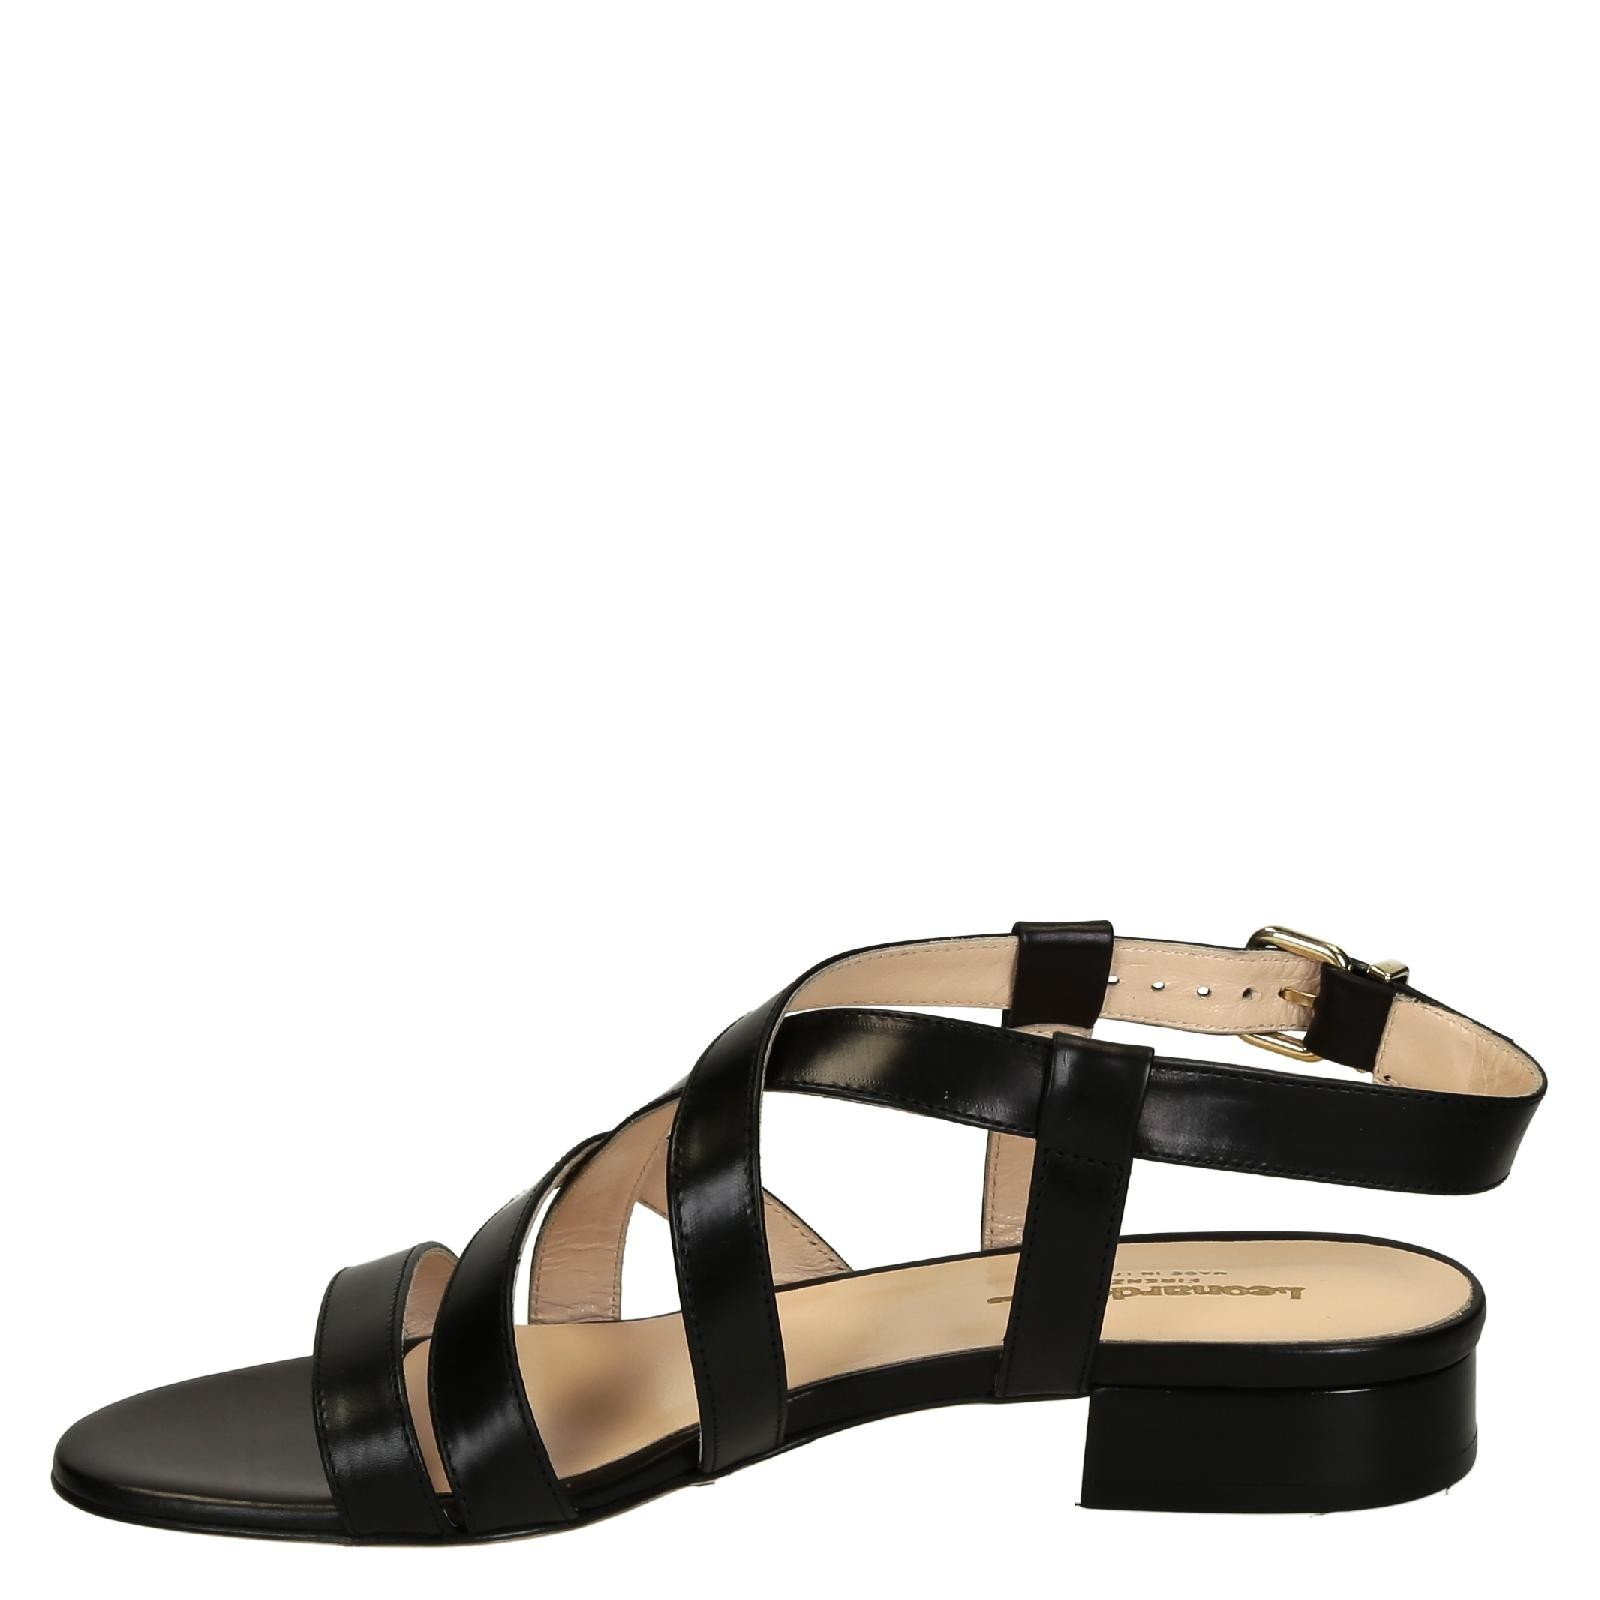 Black leather sandals low heel -  Low Heels Black Leather Strappy Sandals For Women 3